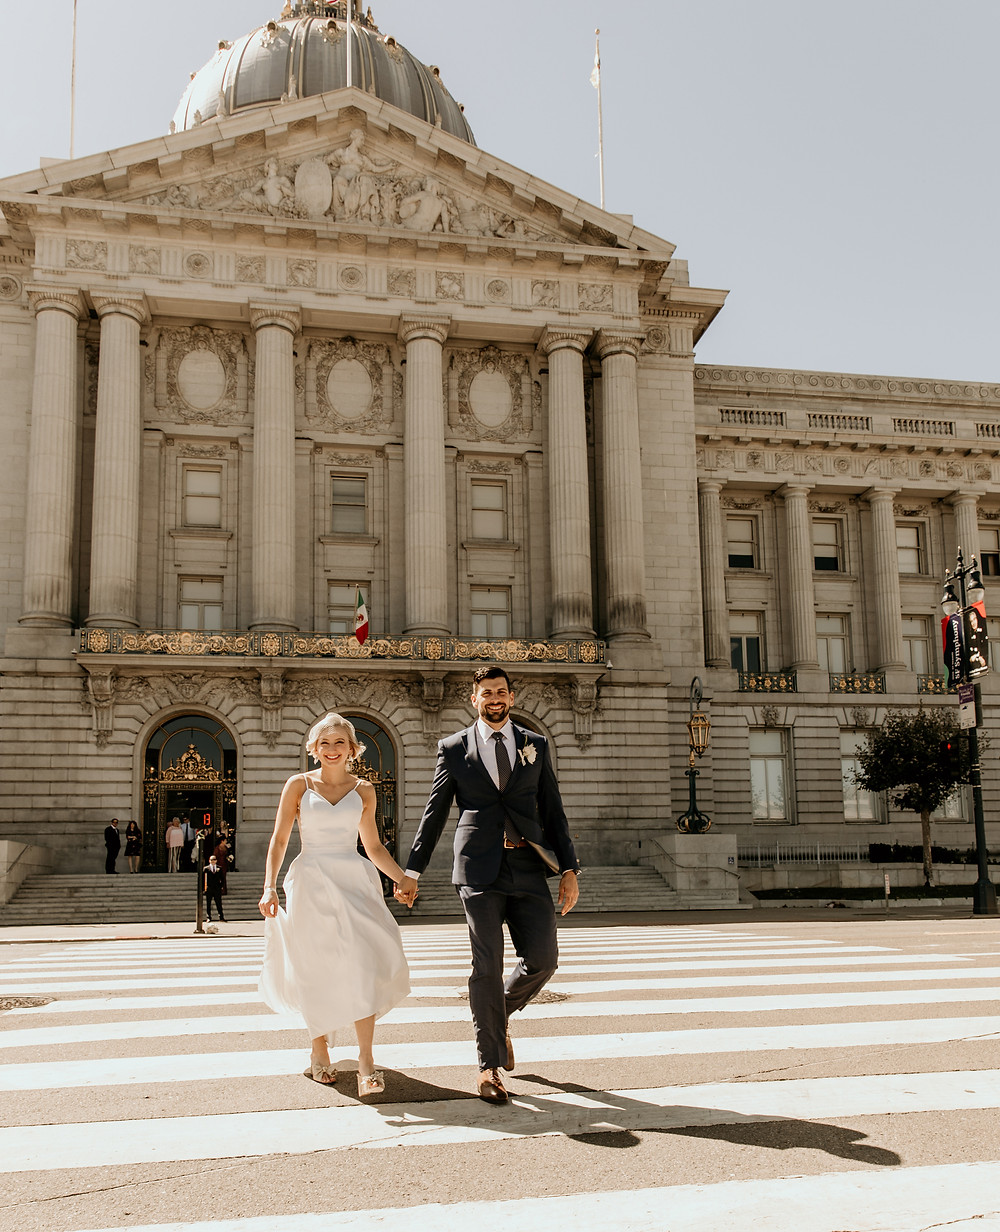 Wedding portraits of modern city wedding in San Francisco CA, with the wedding ceremony at San Francisco City Hall and wedding reception at Bluxome Street Winery for an industrial meets traditional elements.